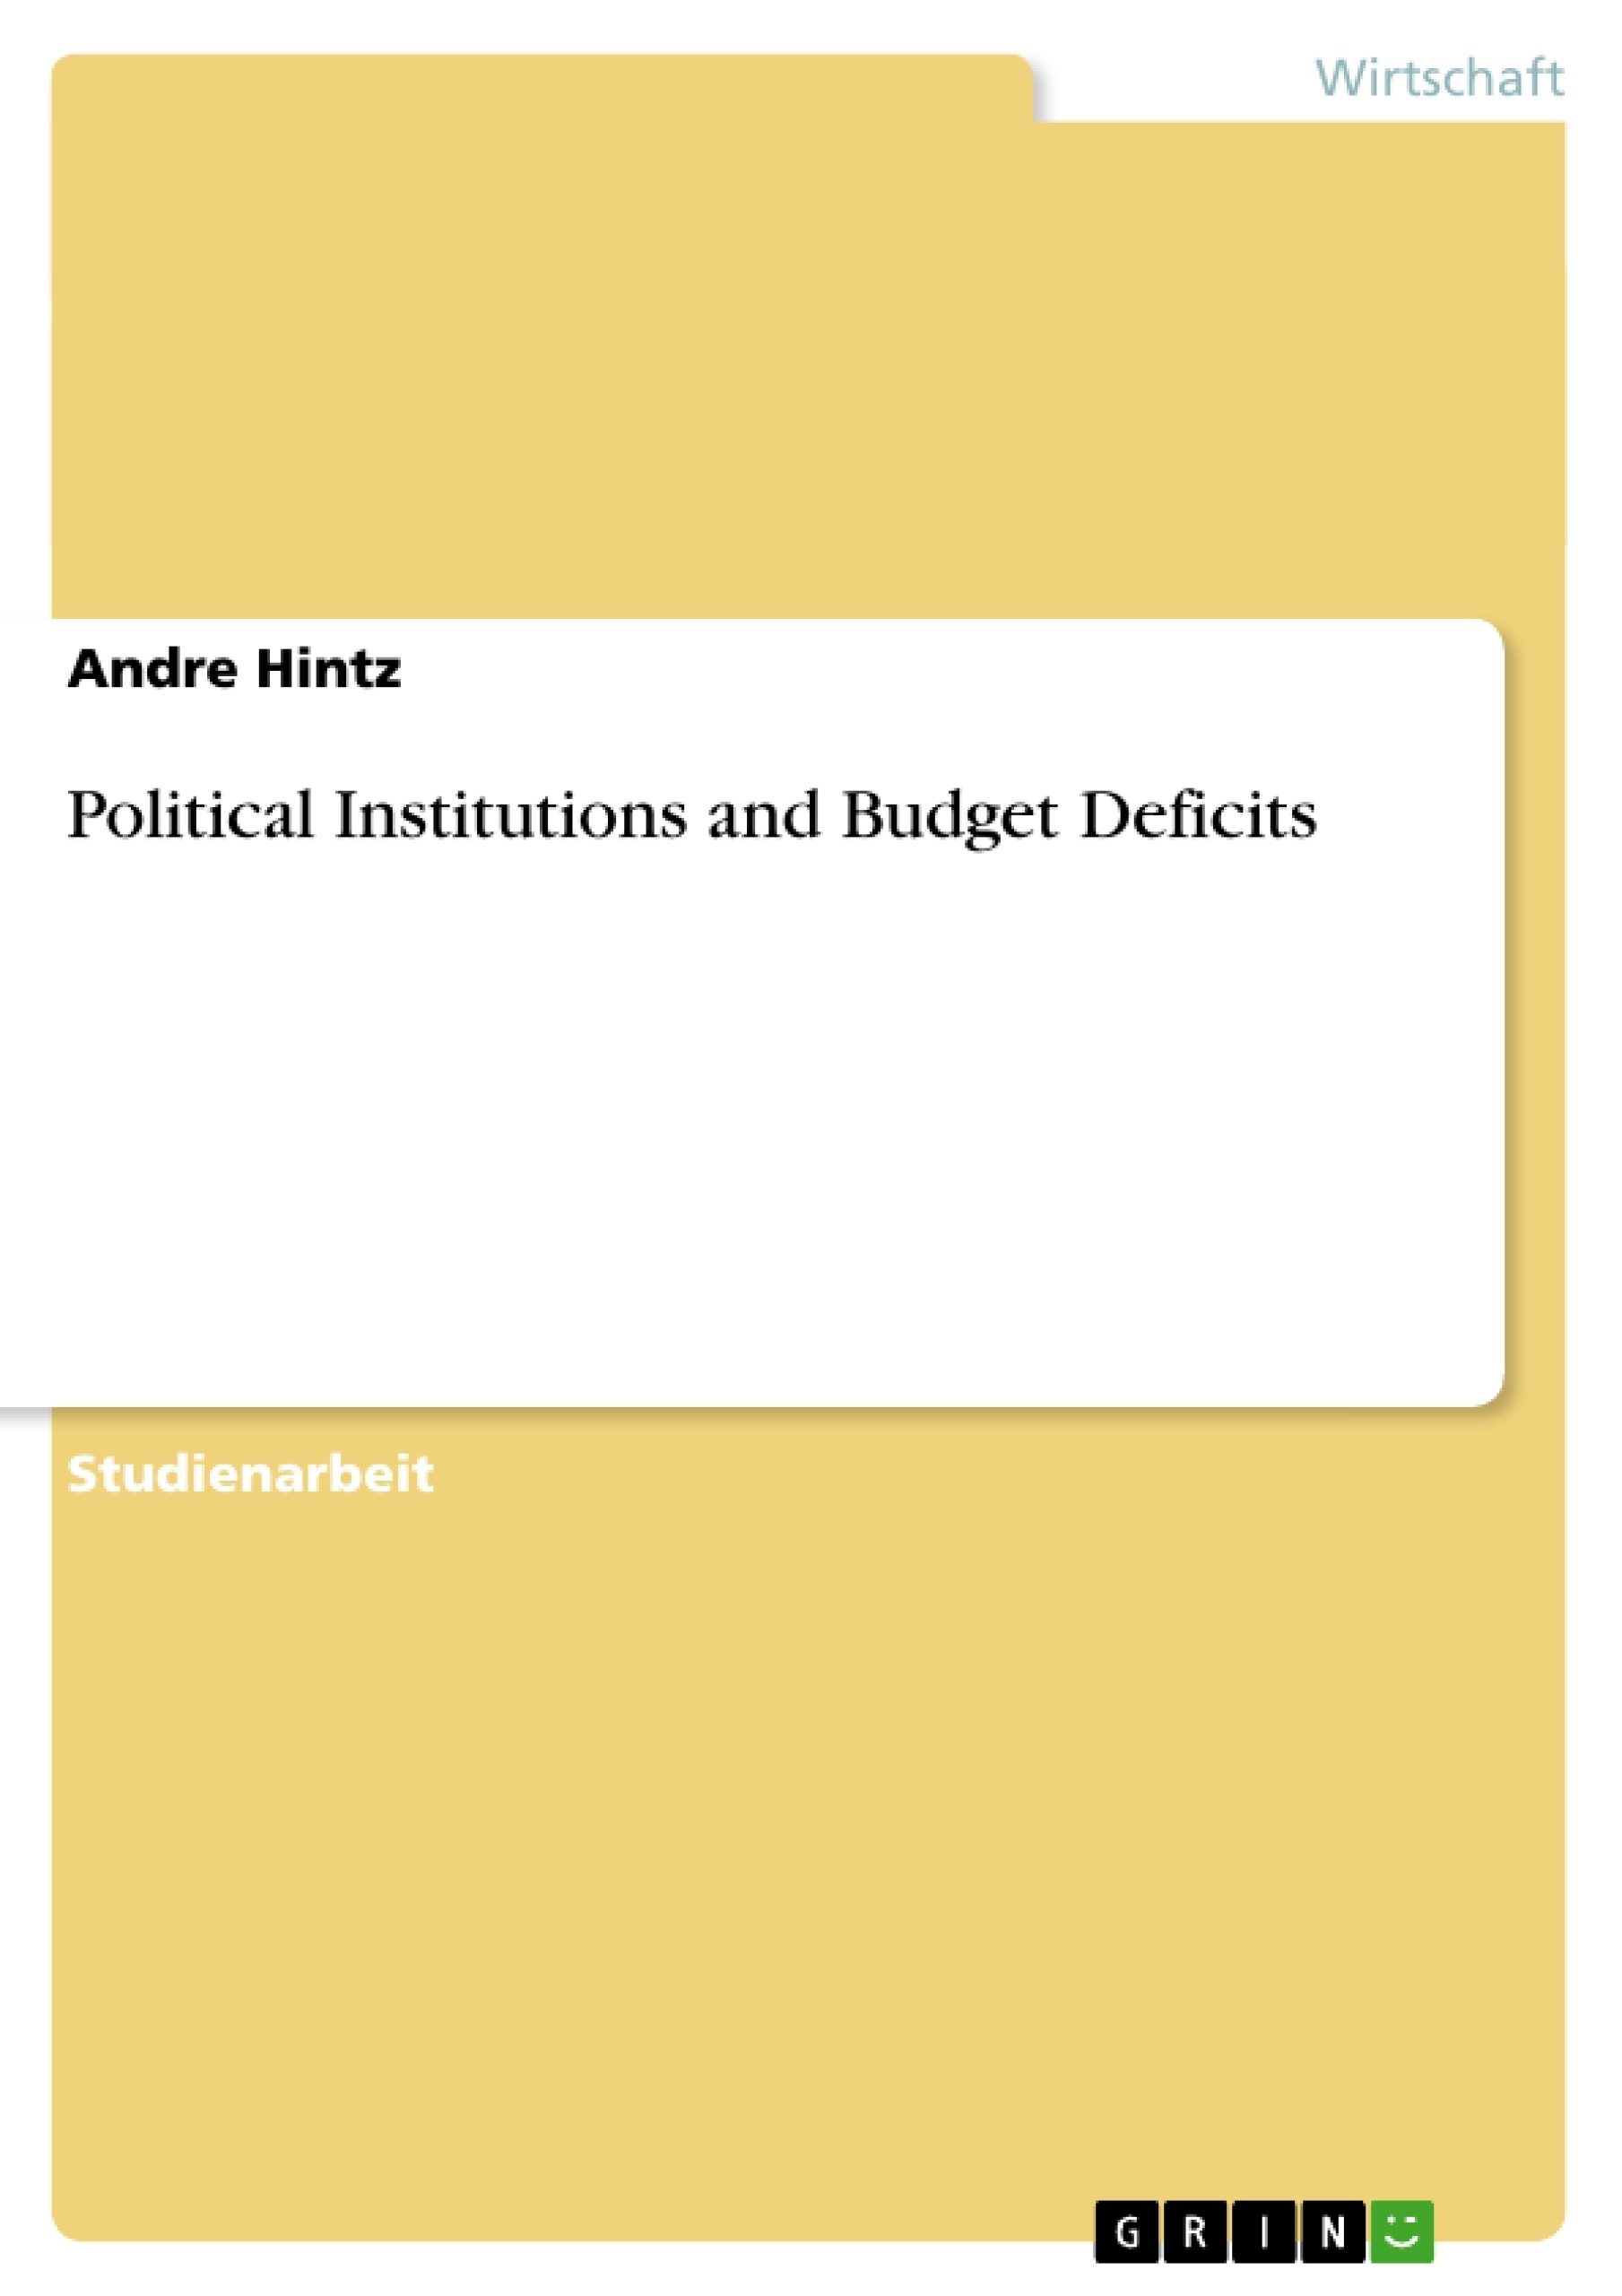 Titel: Political Institutions and Budget Deficits